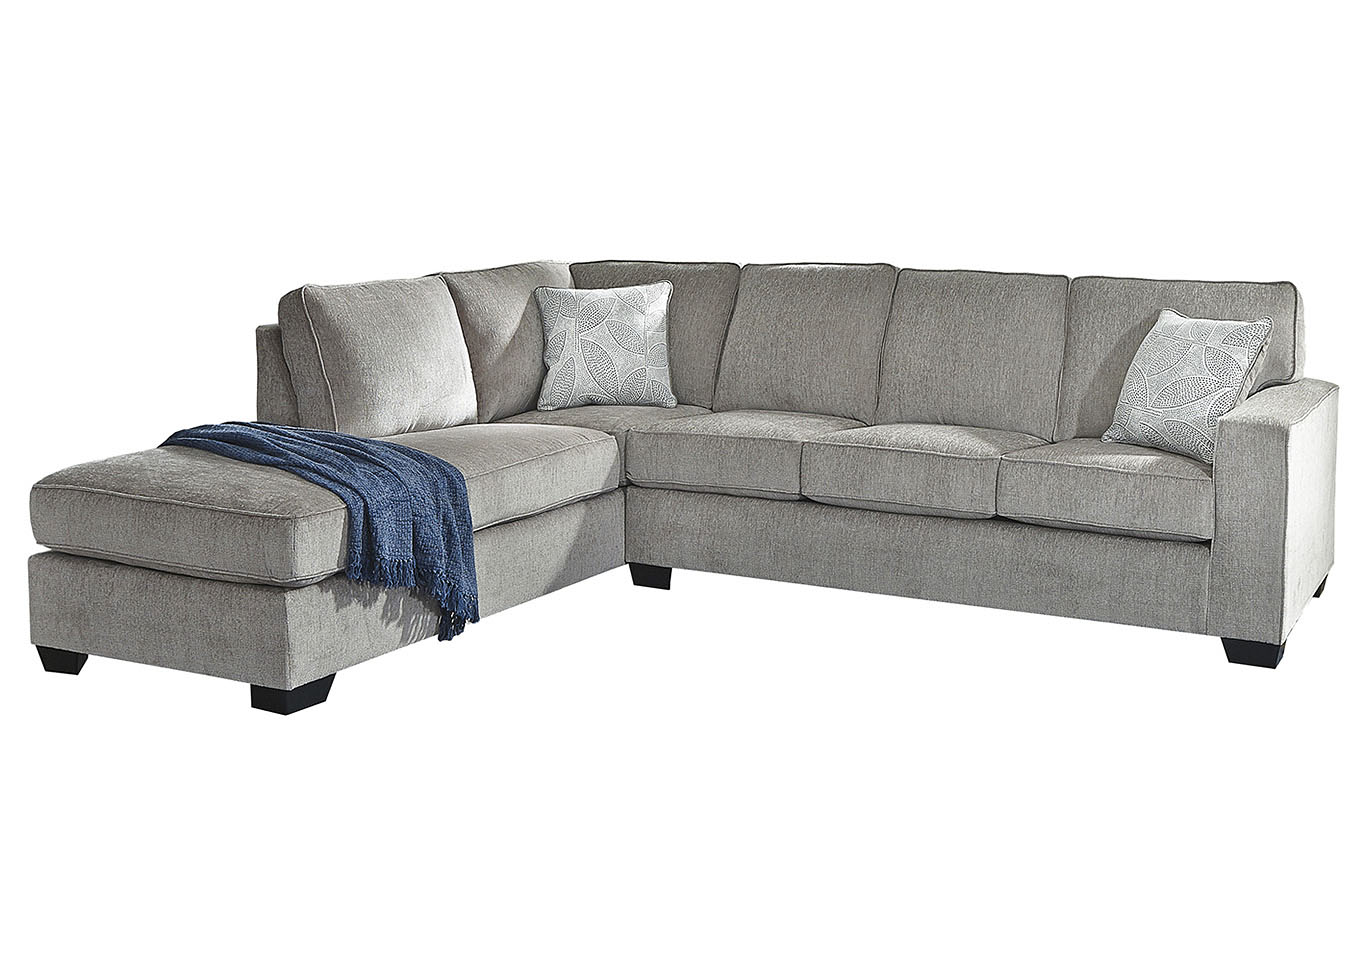 Altari Alloy Left-Arm Facing Chaise End Sectional,Signature Design By Ashley